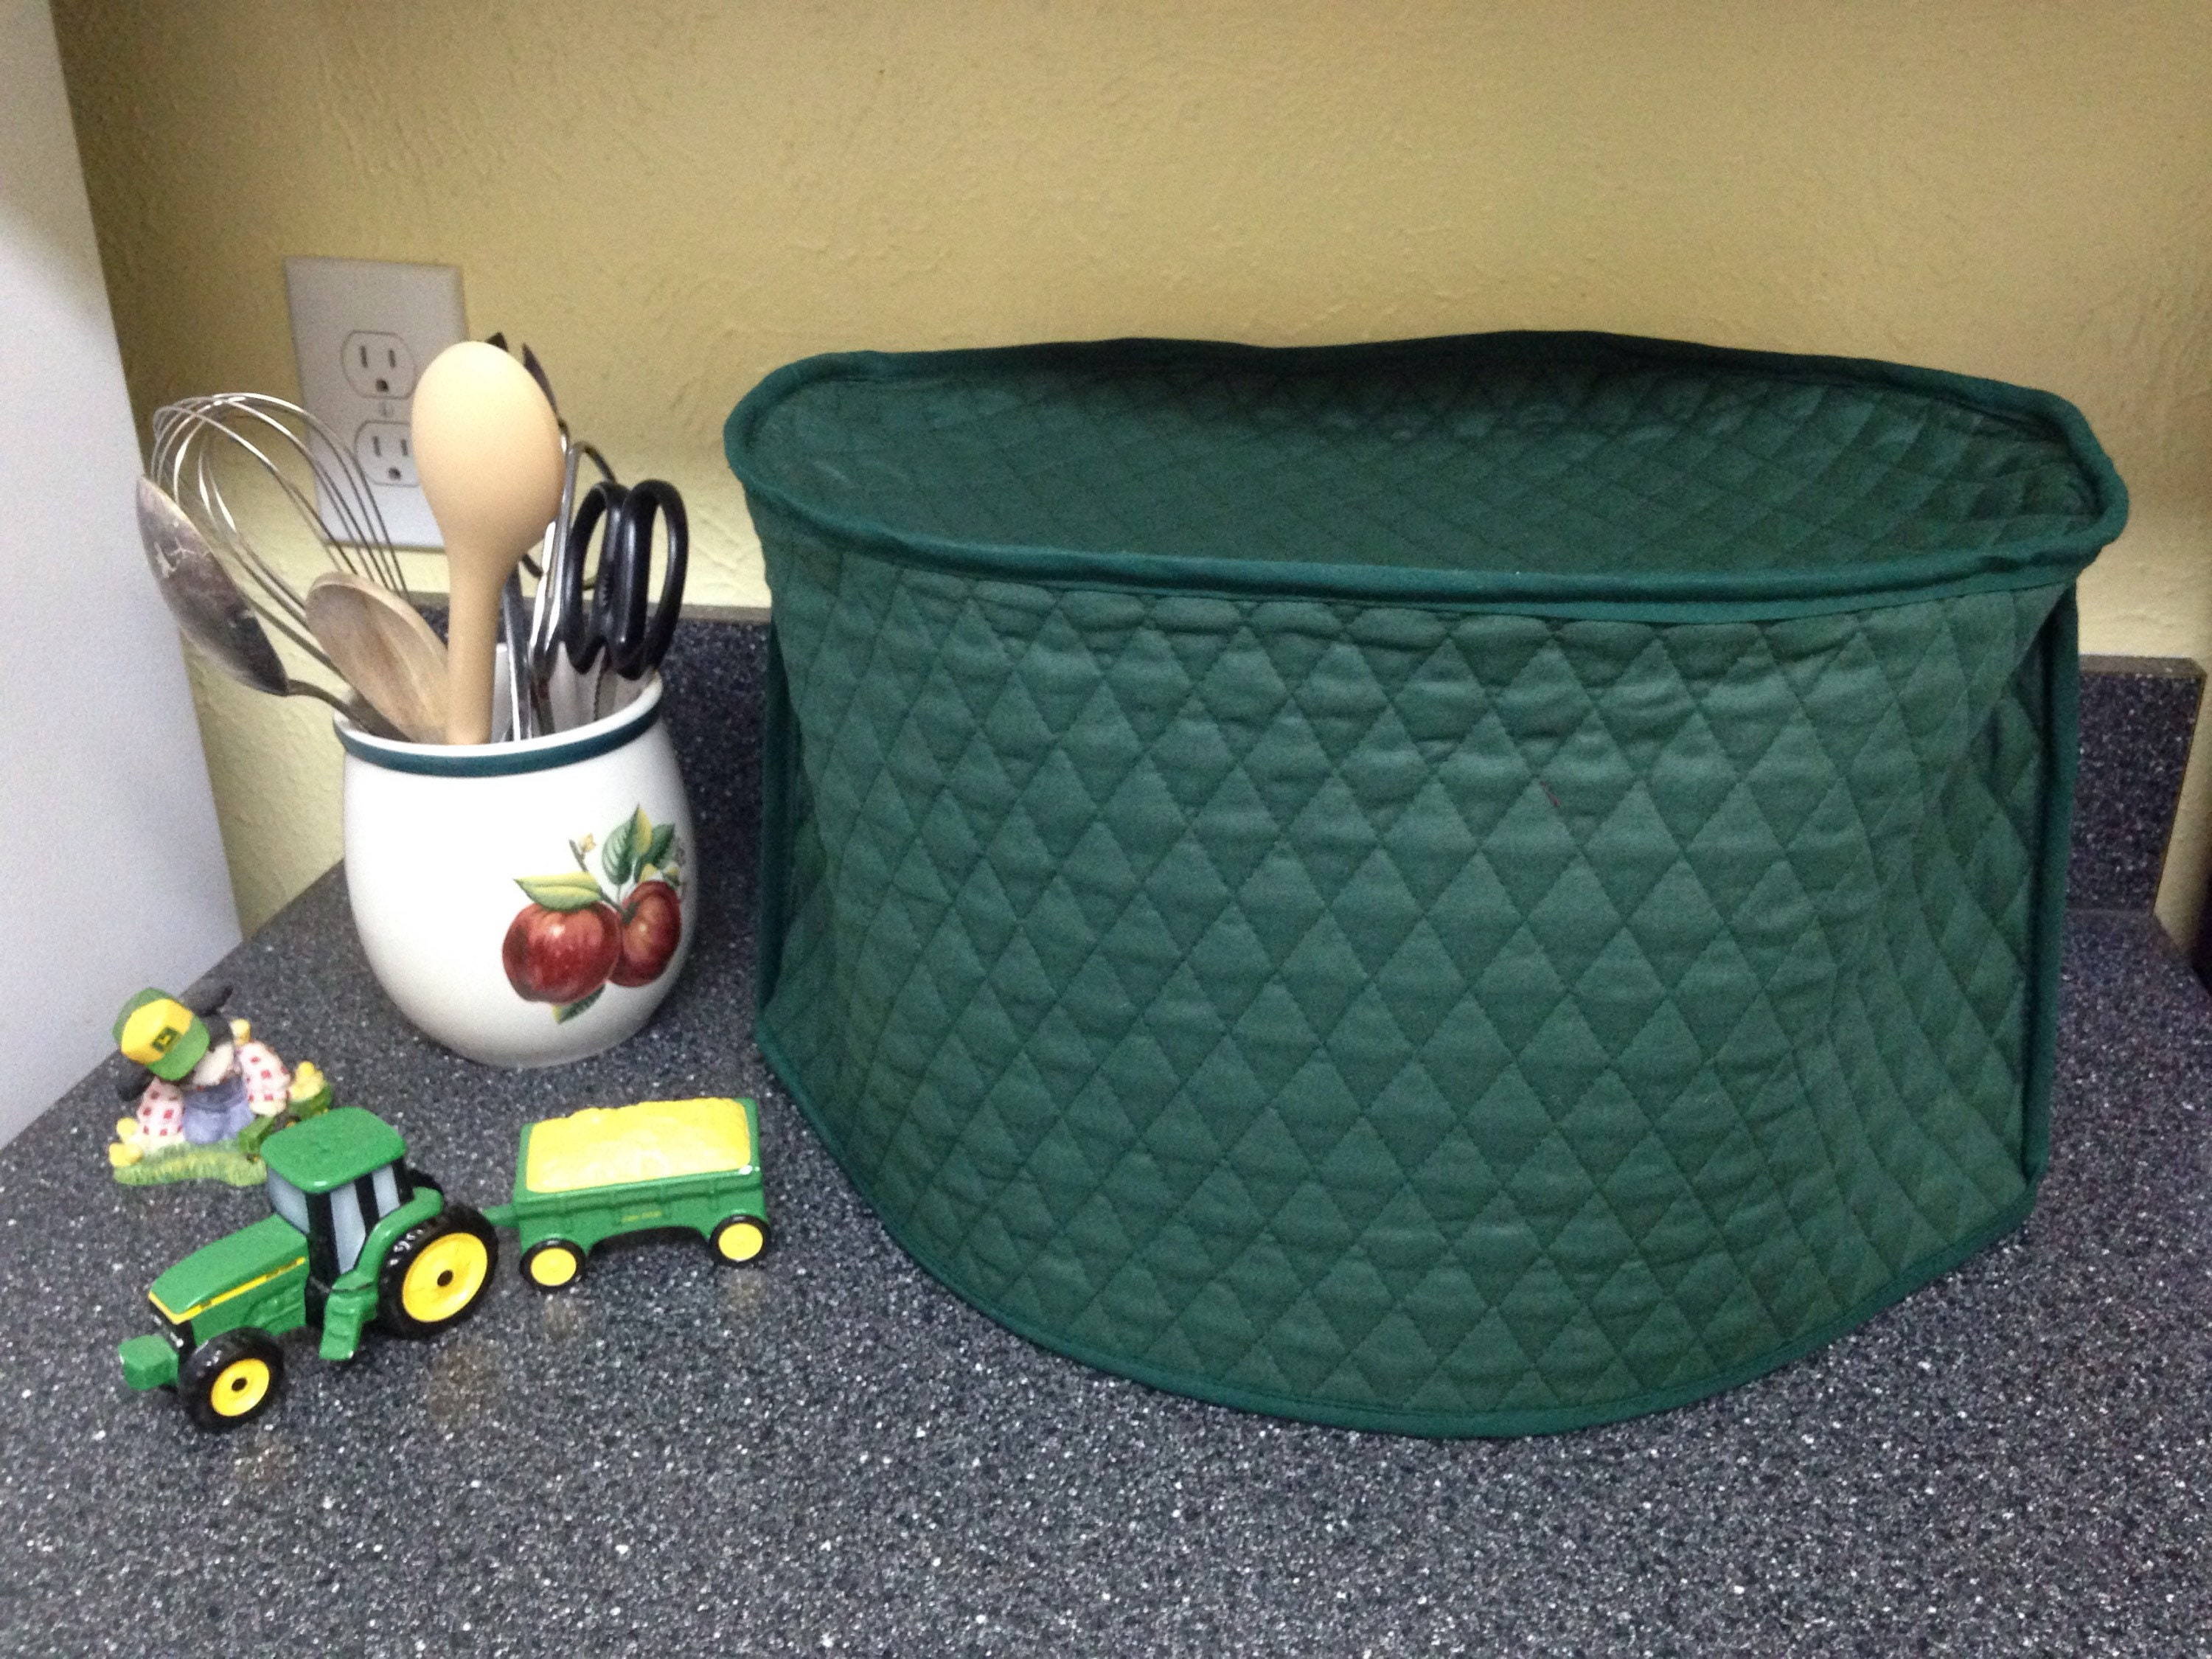 Hunter Green Pine Green Oval Crock Pot Cover Dust Cover | Etsy